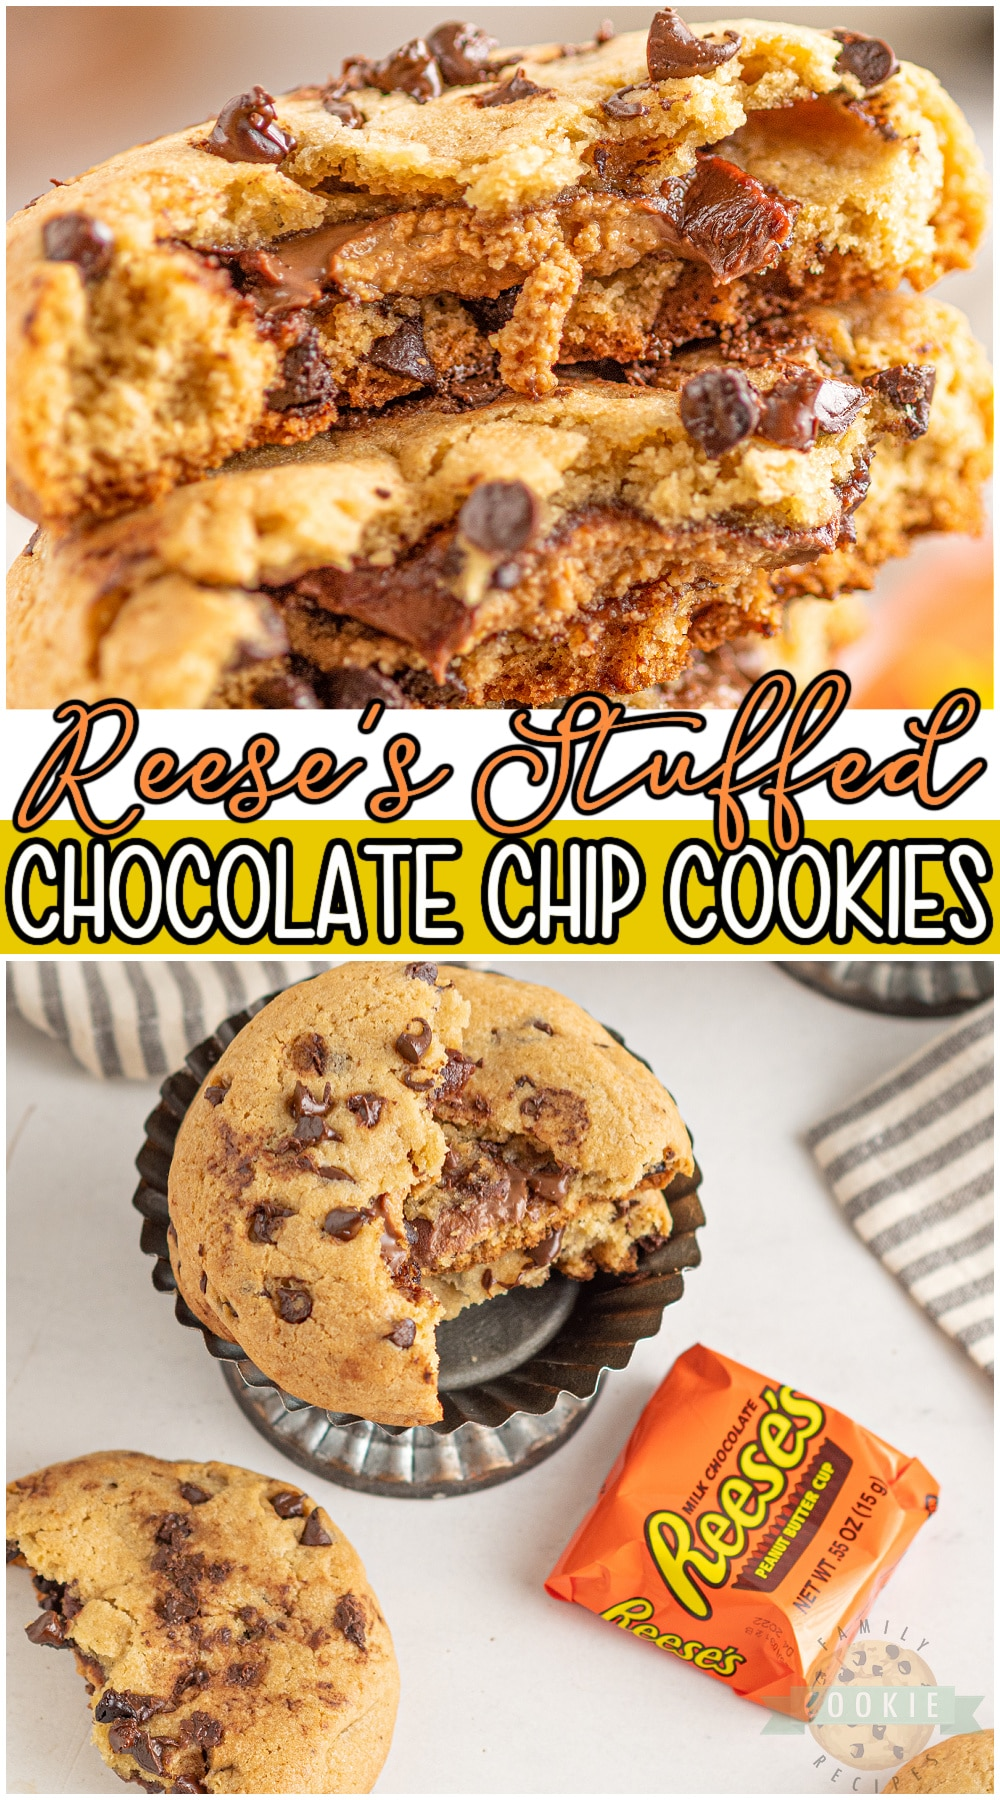 Chocolate Chip Cookies stuffed with a Reese's Peanut Butter Cup for the ultimate cookie treat! Classic cookies with a fun twist for anyone who loves peanut butter + chocolate! #cookies #chocolatechip #reeses #peanutbuttercups #baking #easyrecipe from FAMILY COOKIE RECIPES via @buttergirls